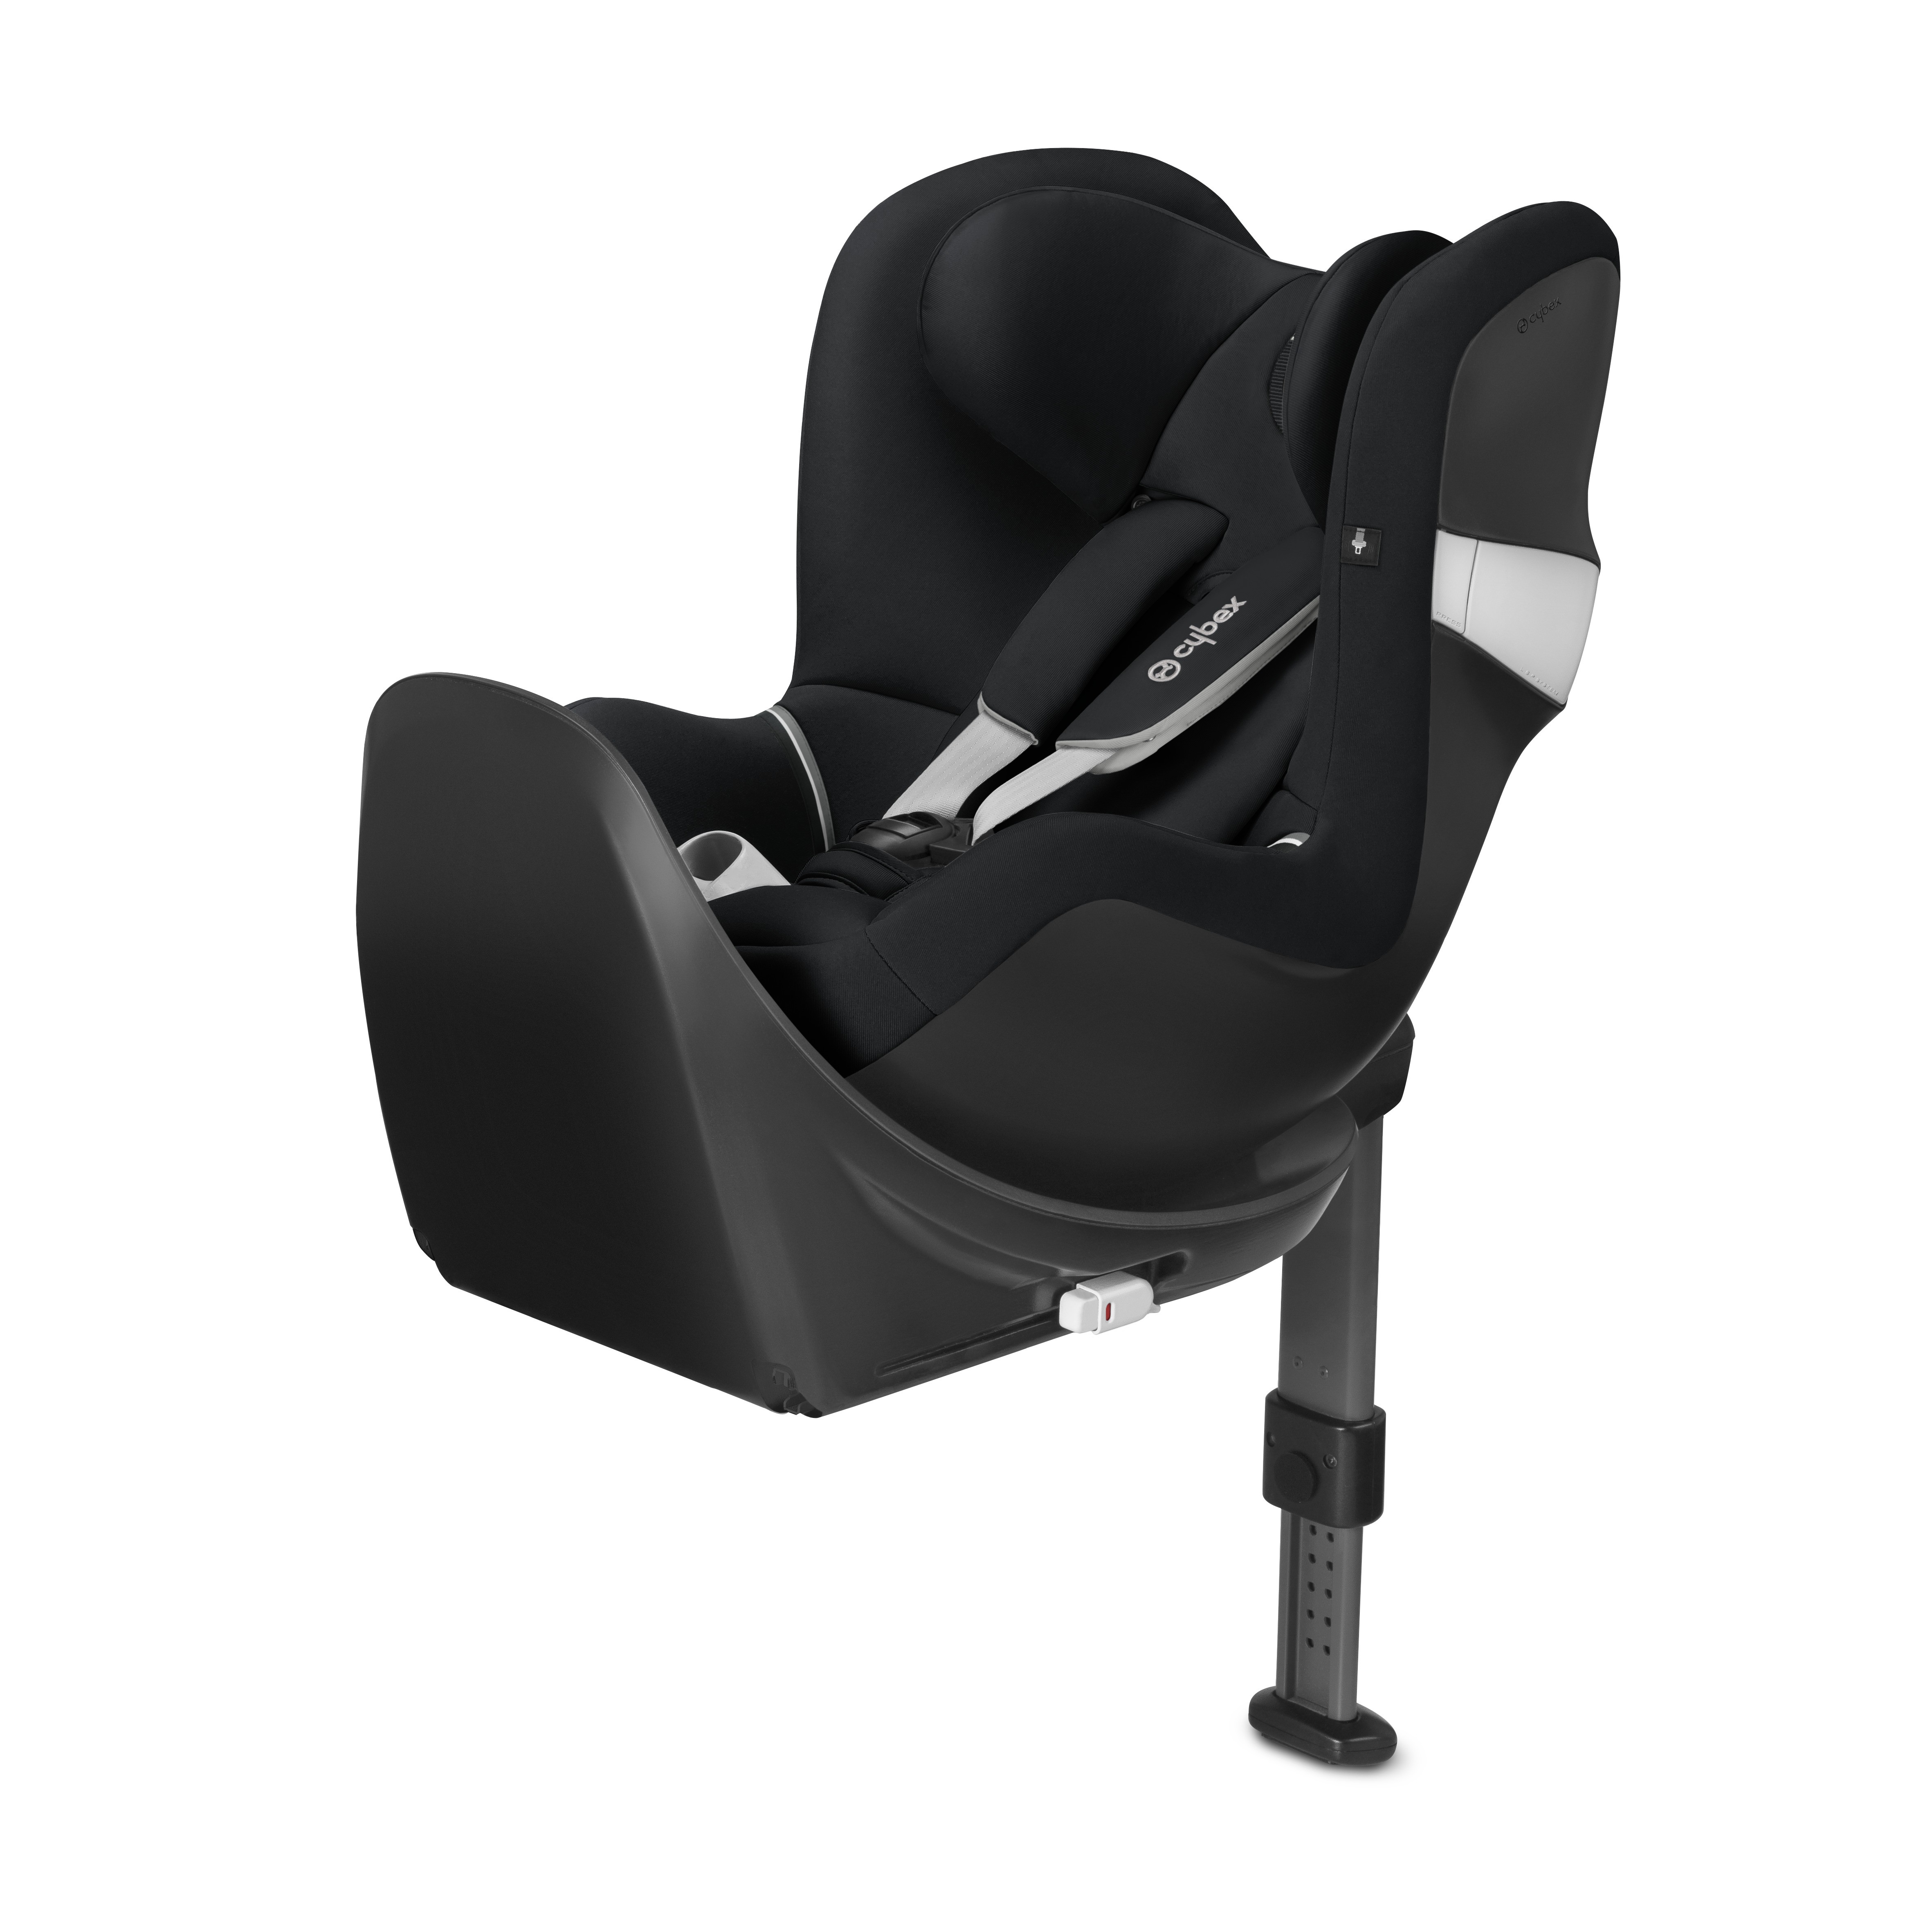 Автокресло Cybex Sirona M2 i-Size и база Base M Stardust Black, цвет черный